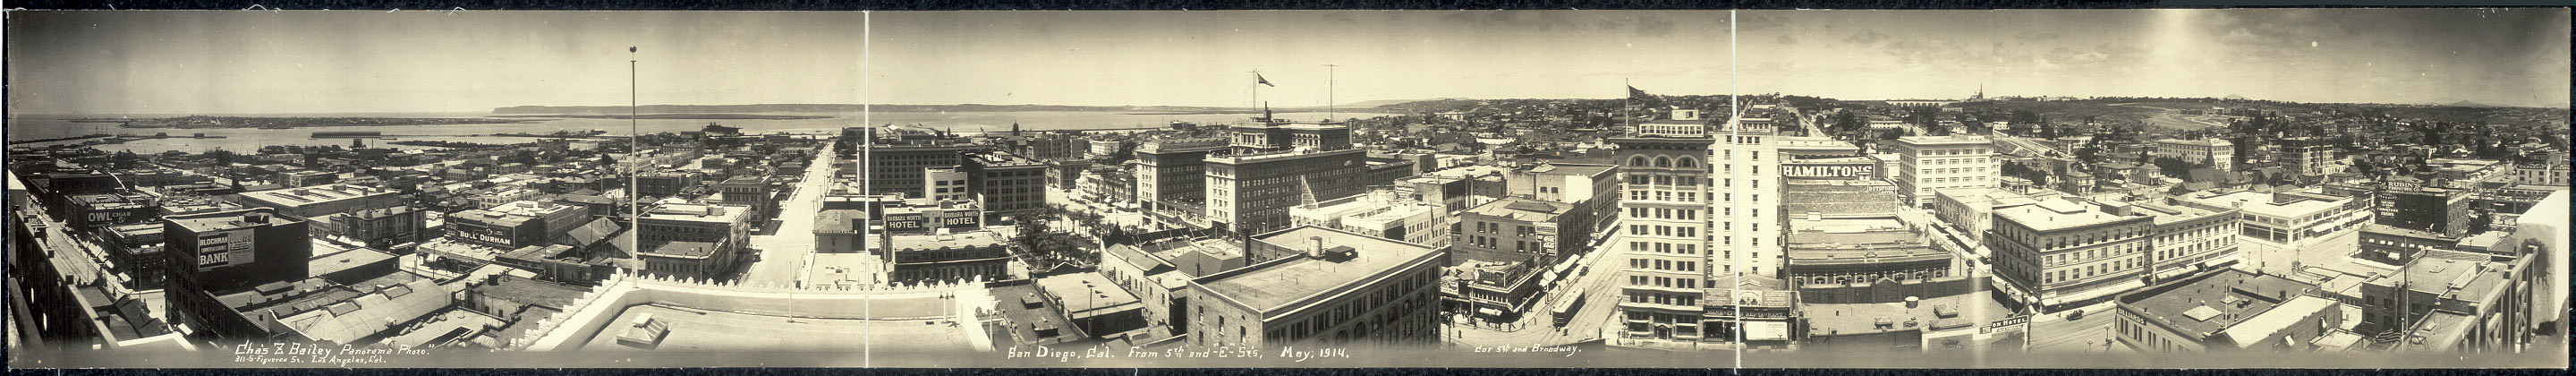 panorama of san diego 1914 loc